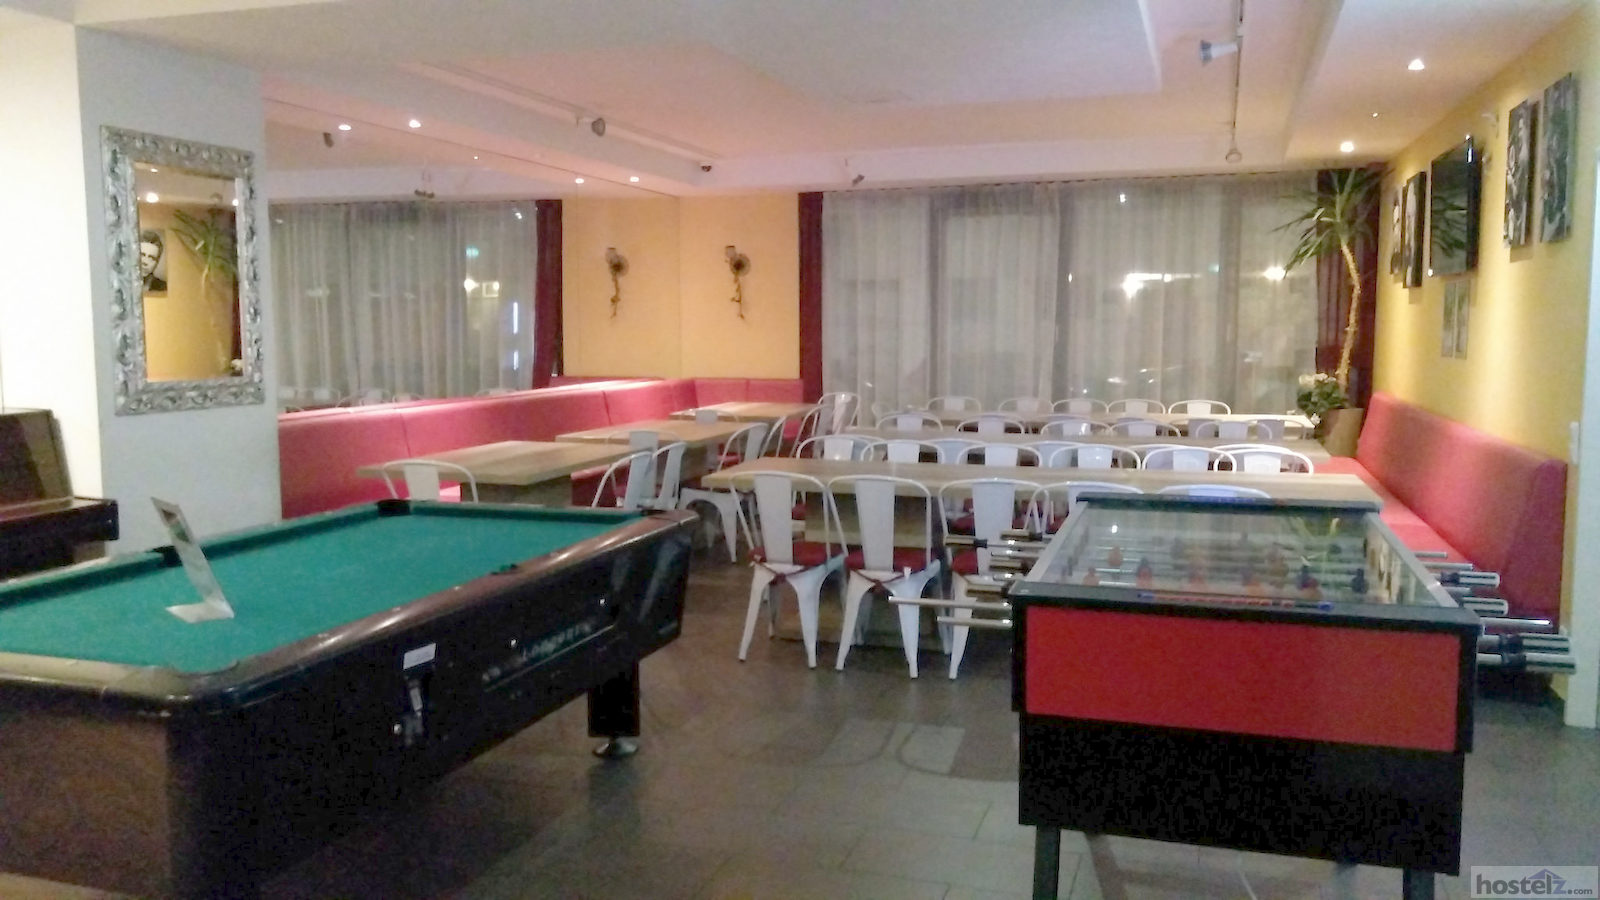 Pool and fuseball tables in common area